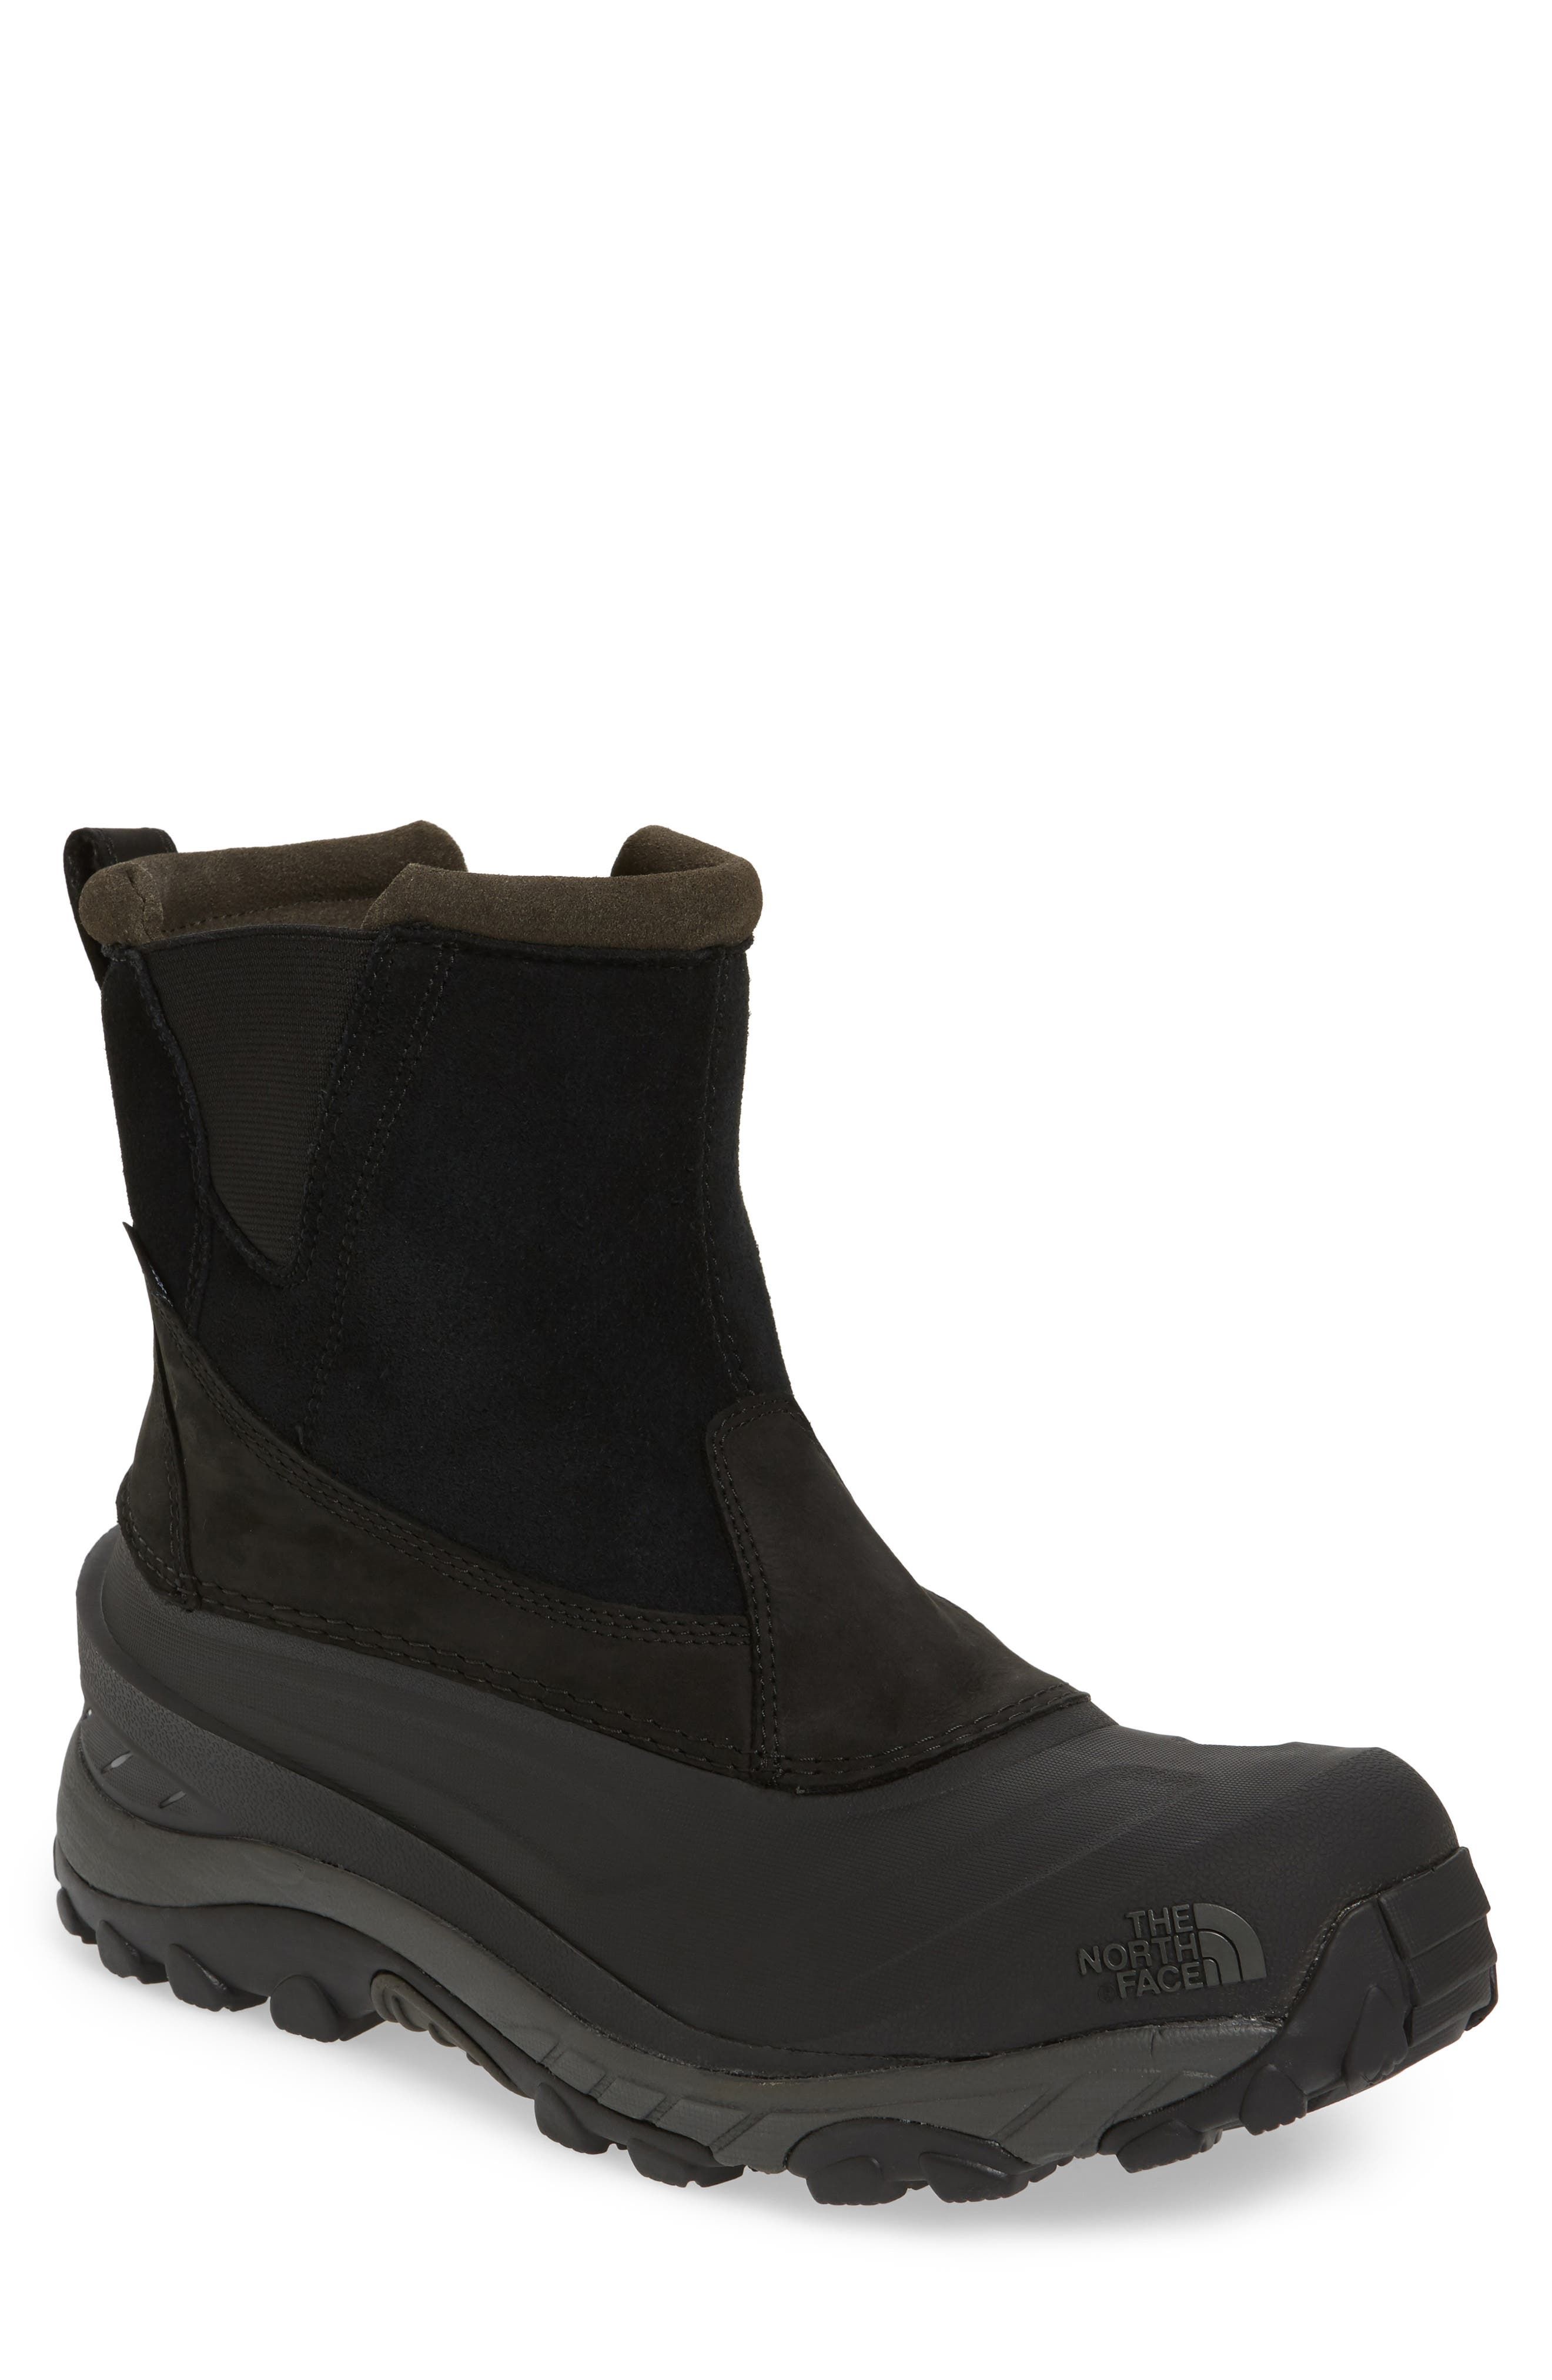 Chilkat III Waterproof Insulated Pull-On Boot,                         Main,                         color, 001